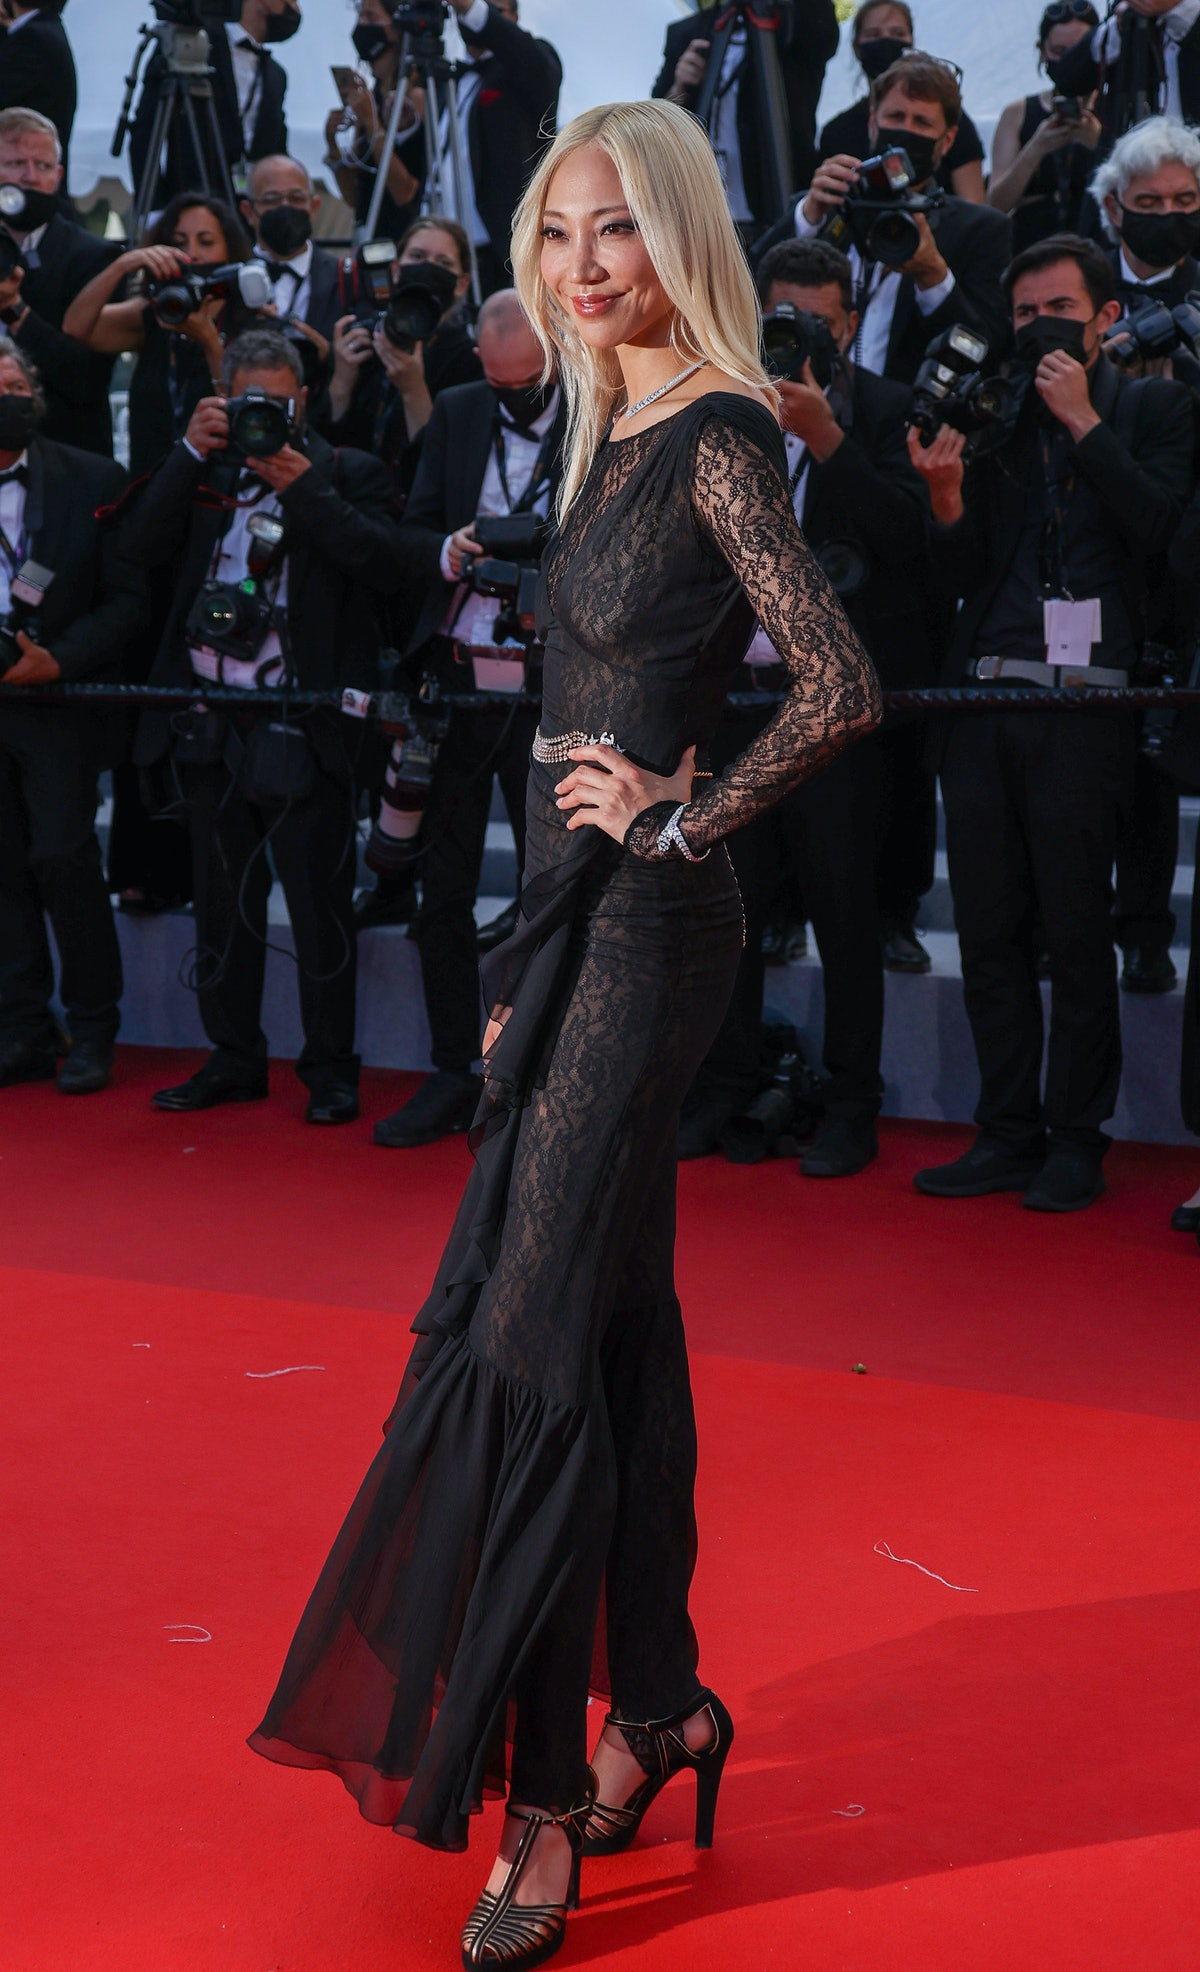 """CANNES, FRANCE - JULY 08: Soo Joo Park attends the """"Stillwater"""" screening during the 74th annual Cannes Film Festival on July 08, 2021 in Cannes, France. (Photo by Mike Marsland/WireImage)"""